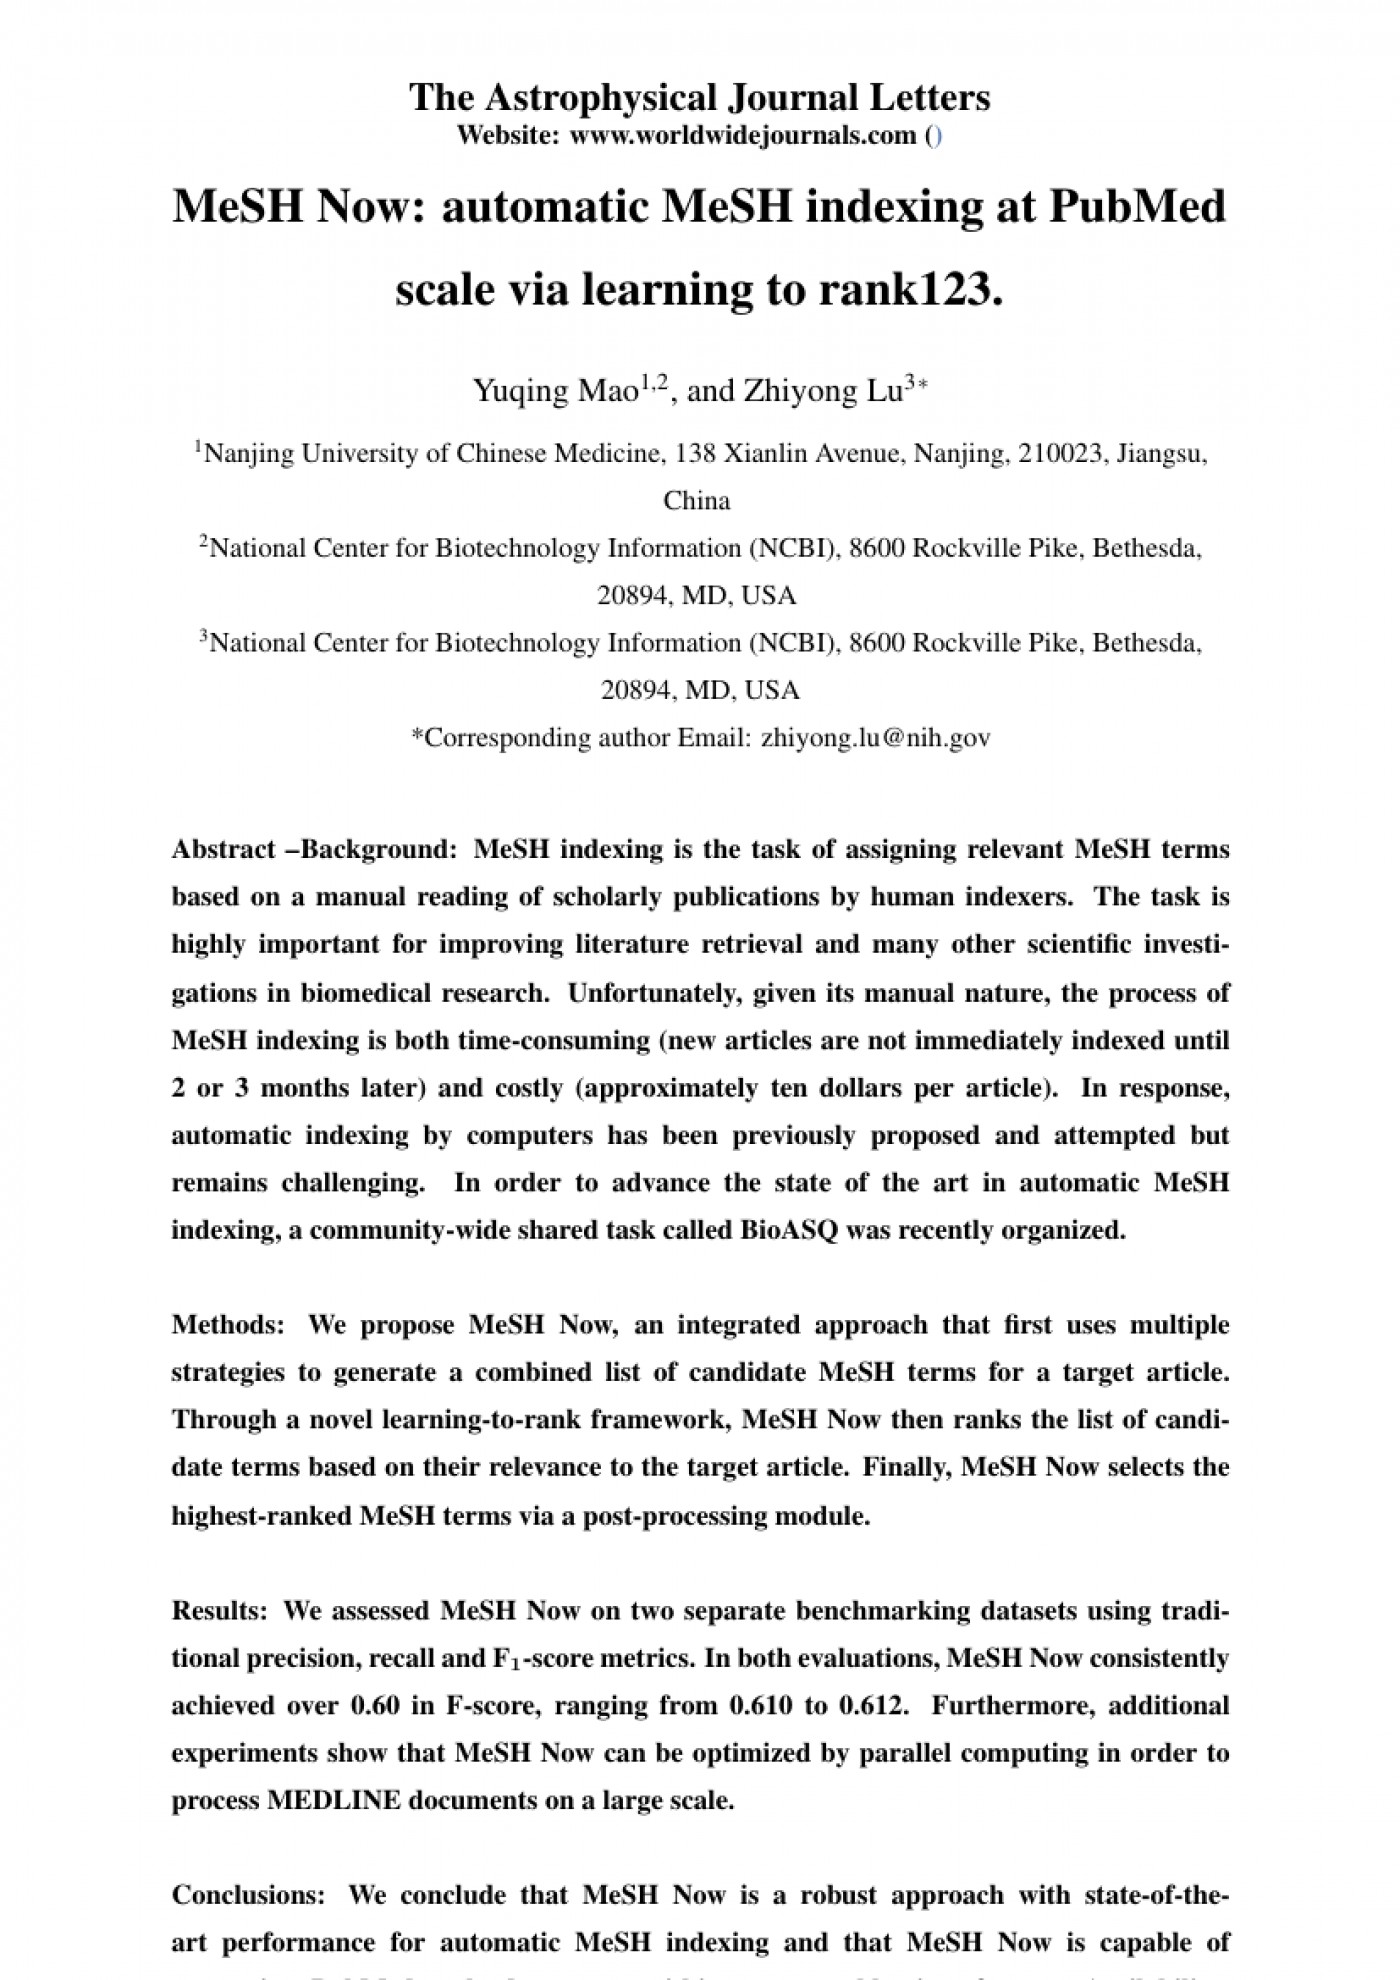 006 Research Paper Order Of Scientific Top Conclusion Tense 1400